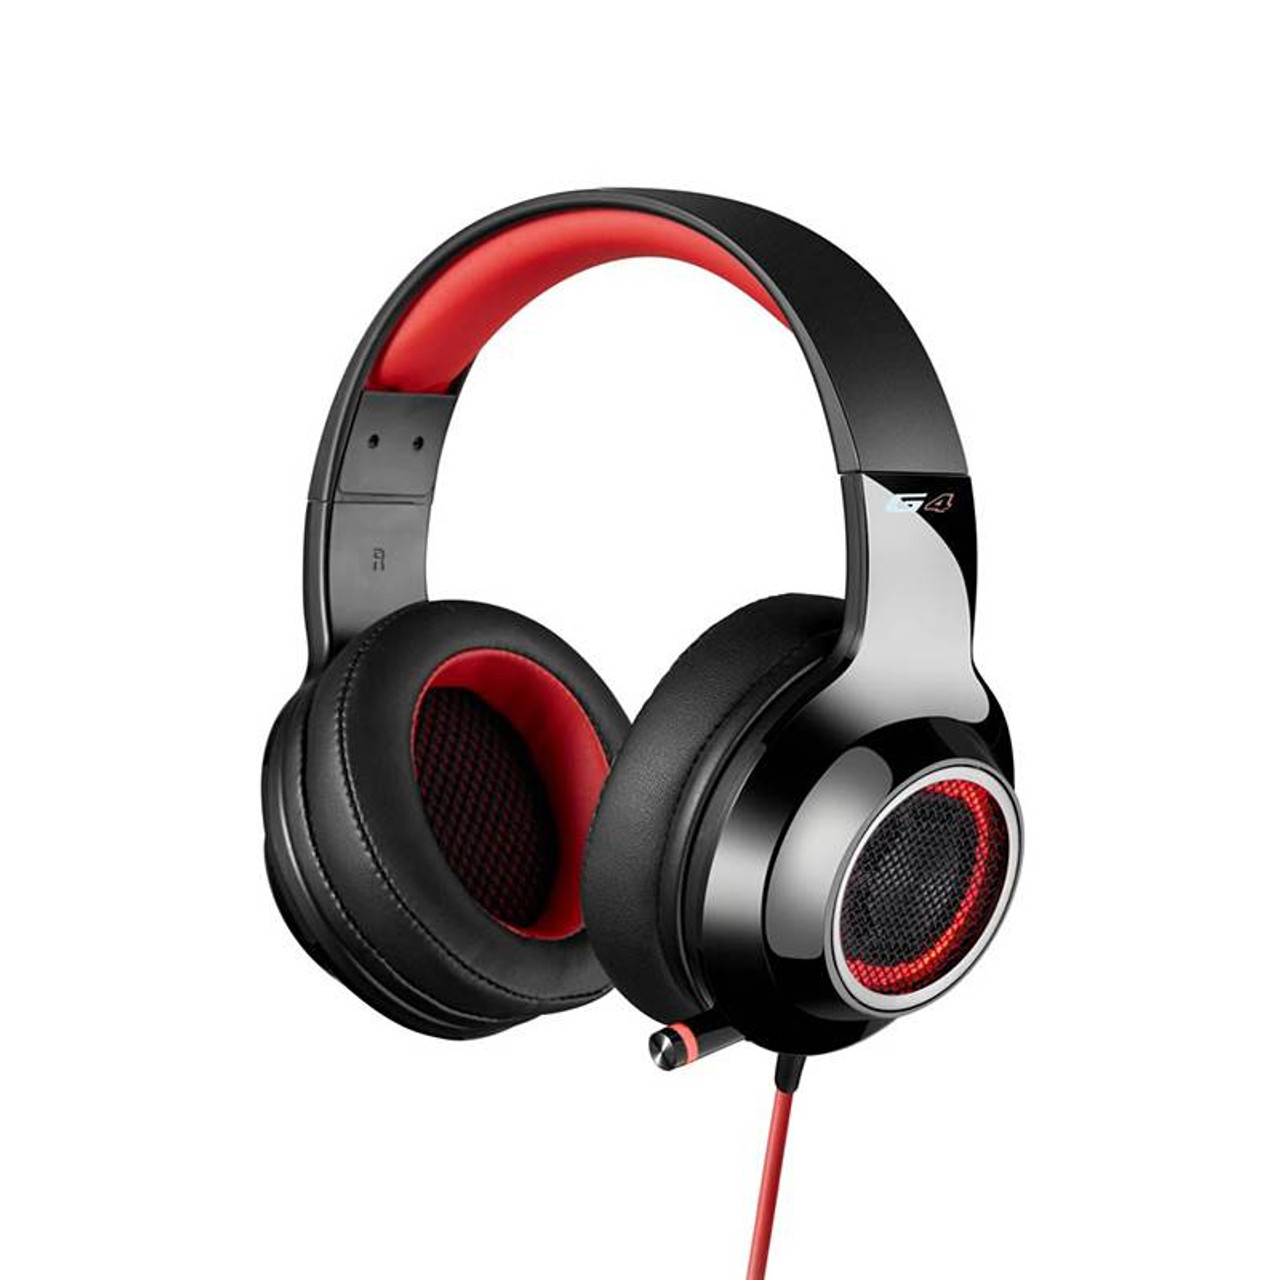 Image for Edifier G4 7.1 Virtual Surround Sound Gaming Headset - Red CX Computer Superstore